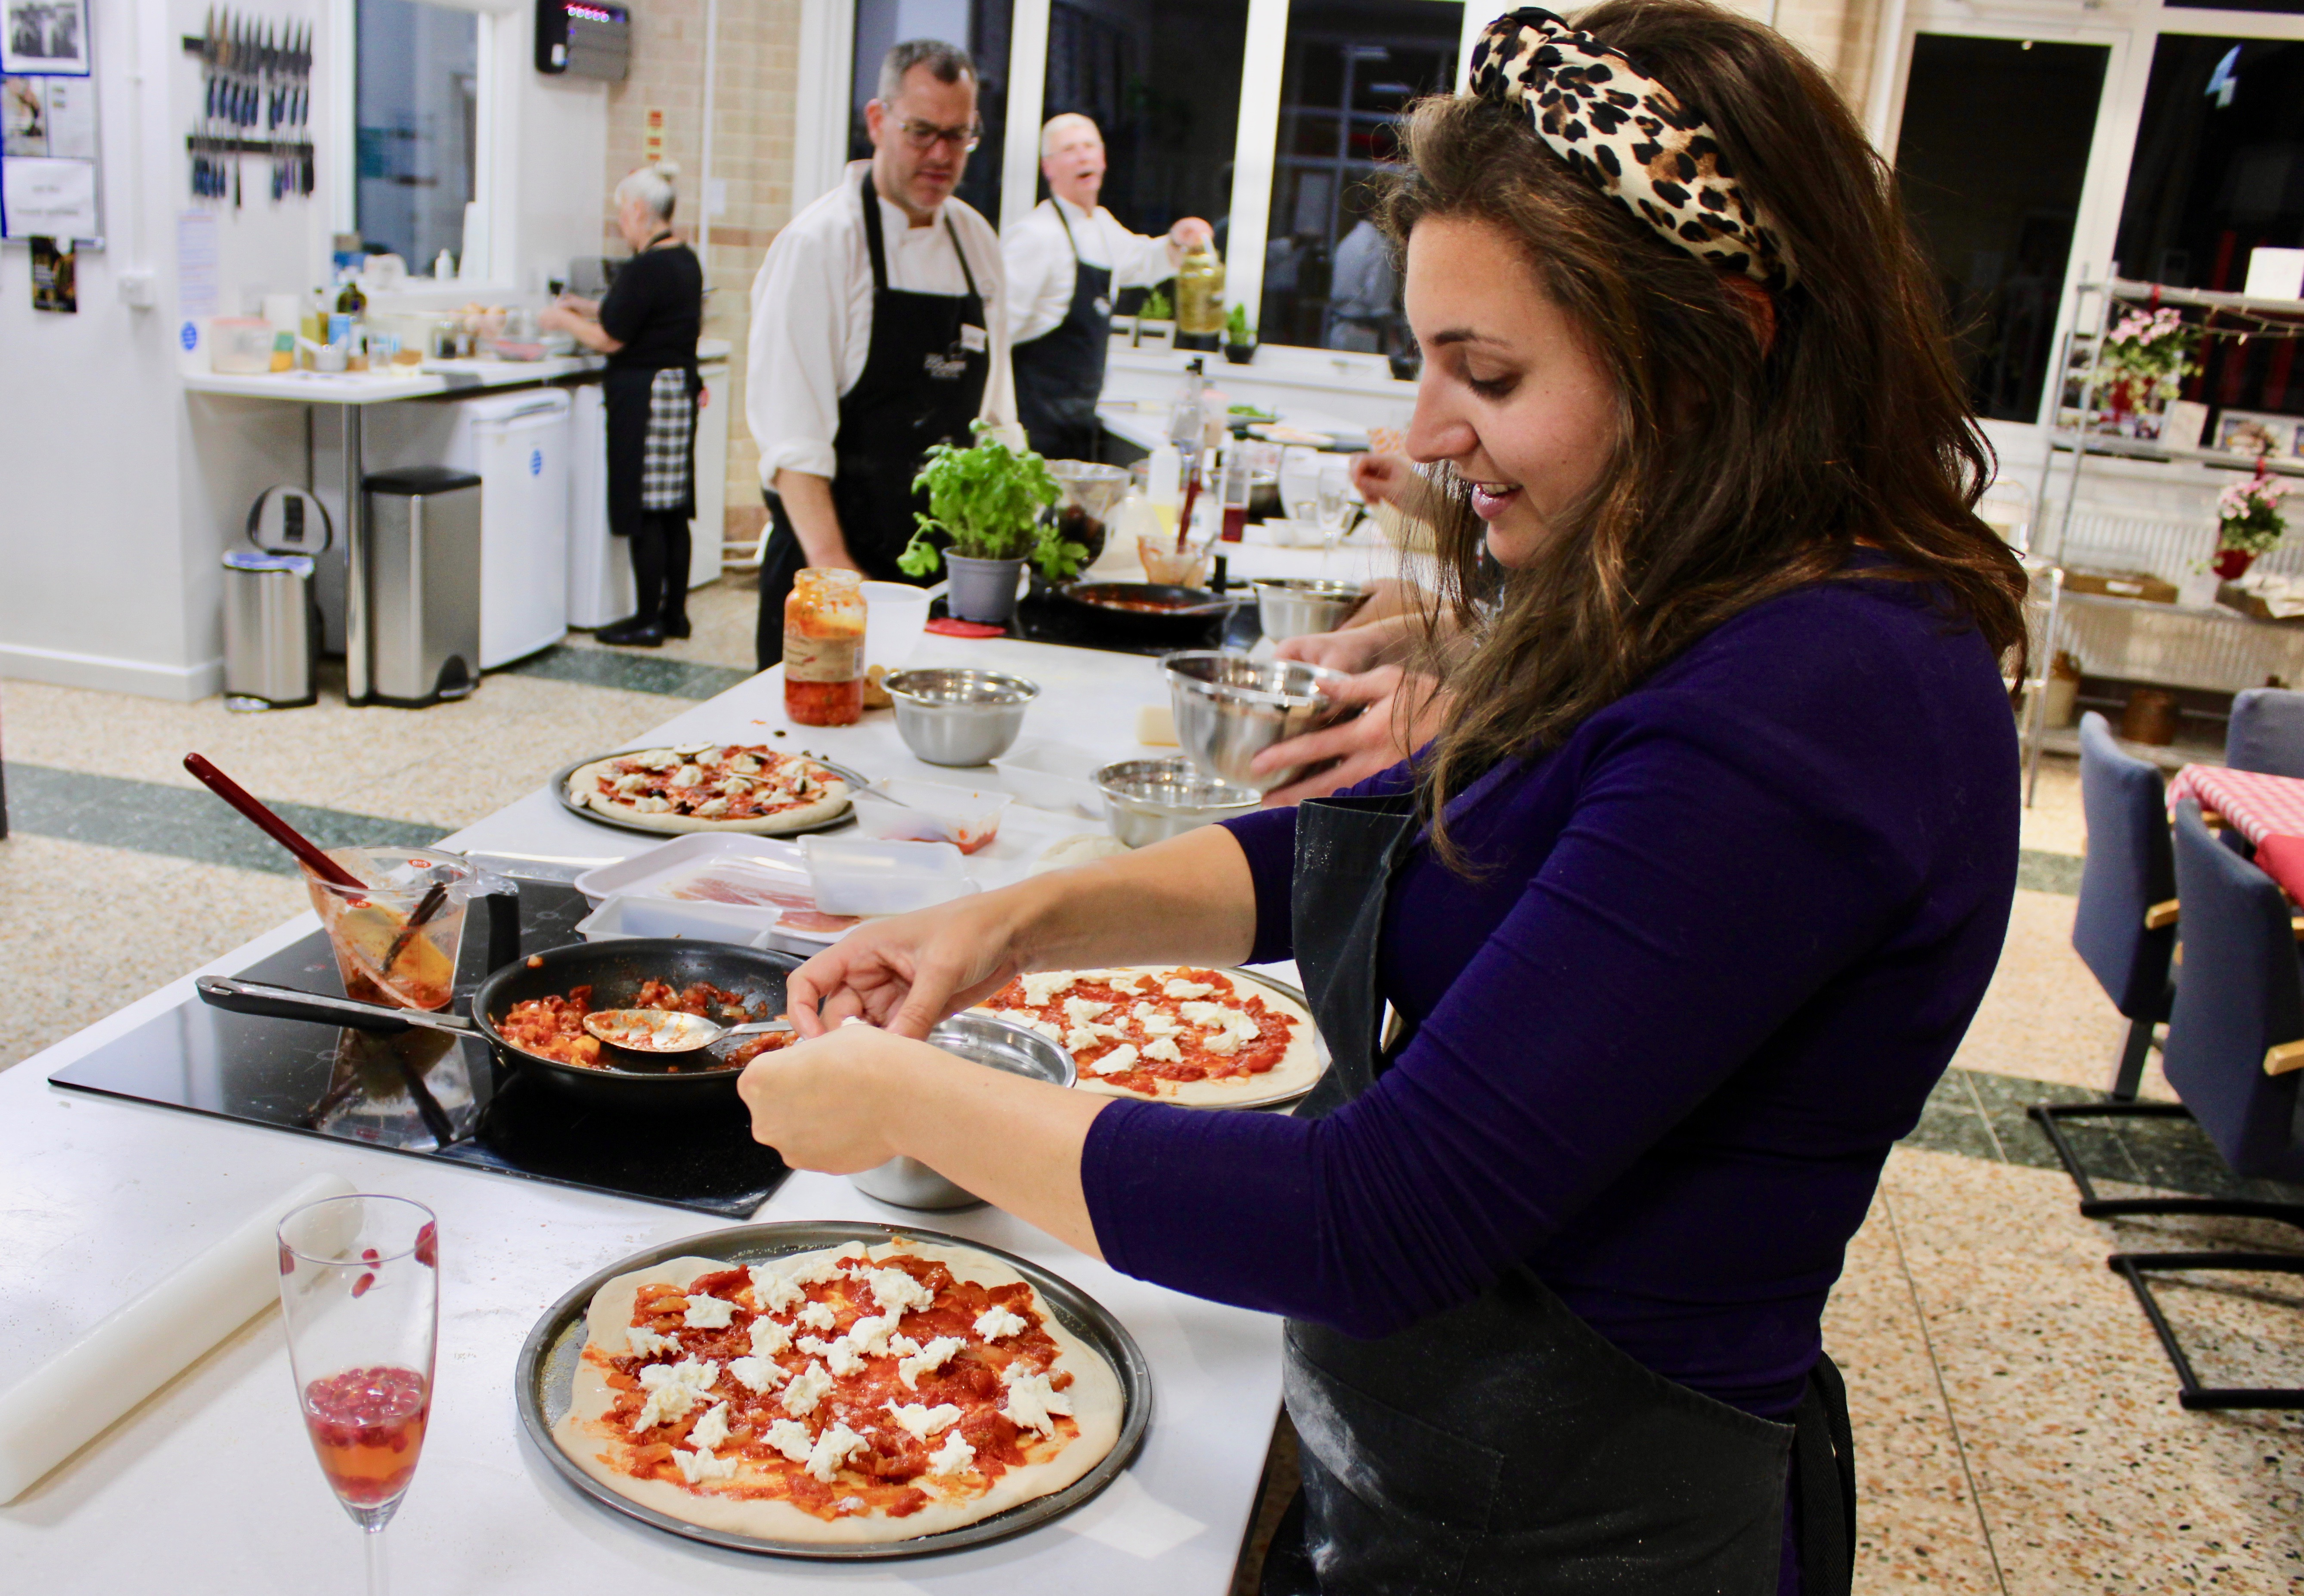 Pizza Making With Leeds Cookery School And Why They Can't be Topped